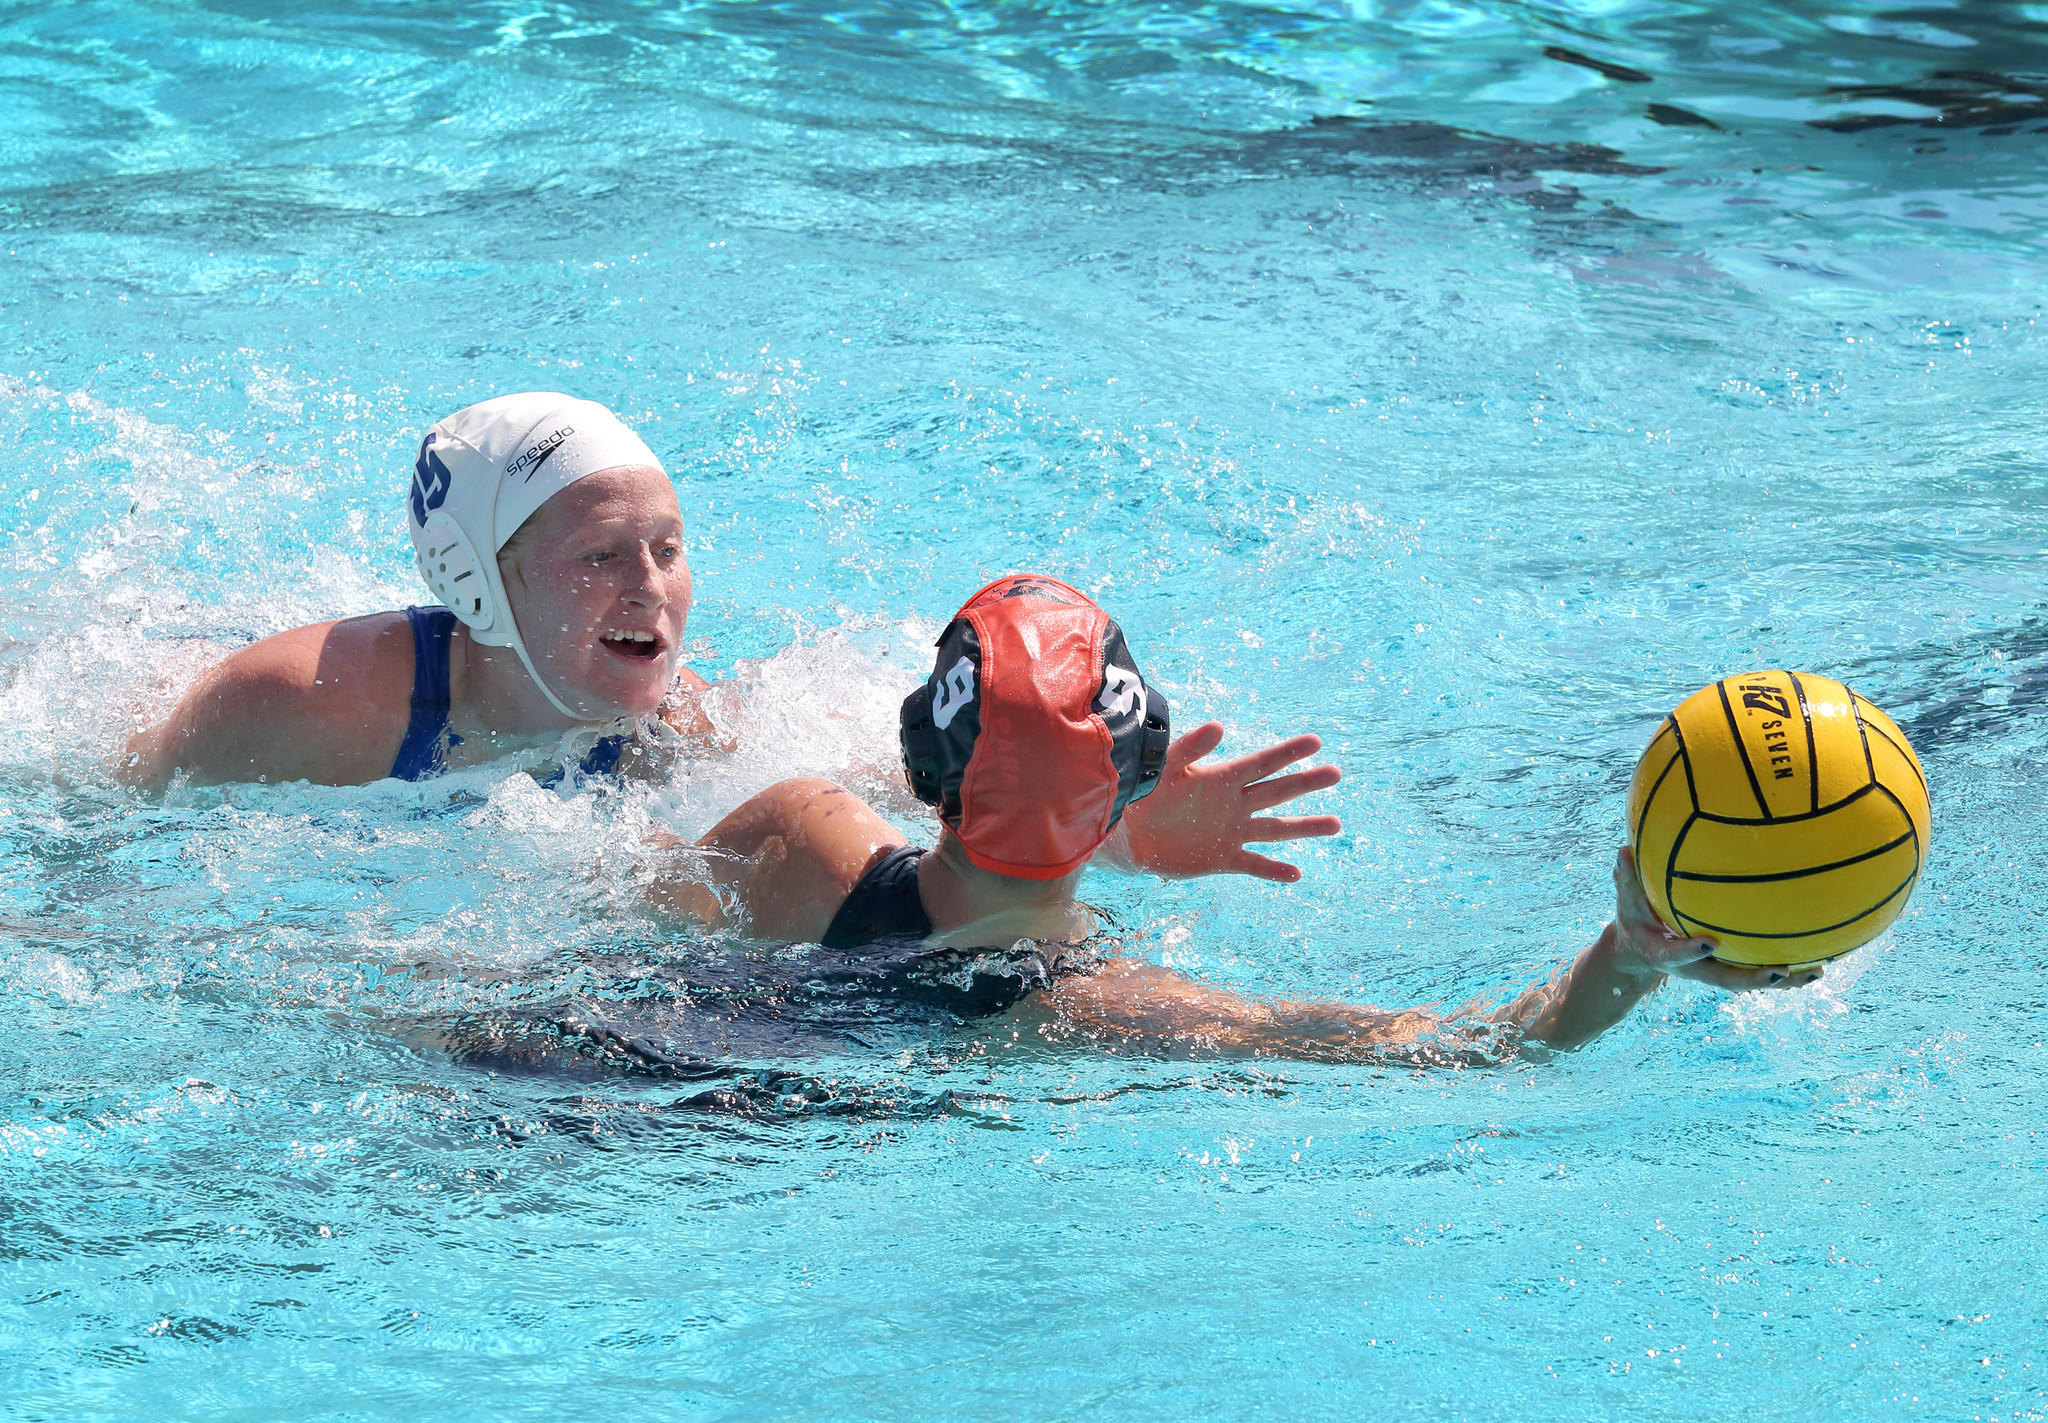 Alexis Moraitis, from Westminster Academy, left, and Caroline Alessandro, from Winter Park, are fighting for the ball during the state girls water polo quarterfinals.